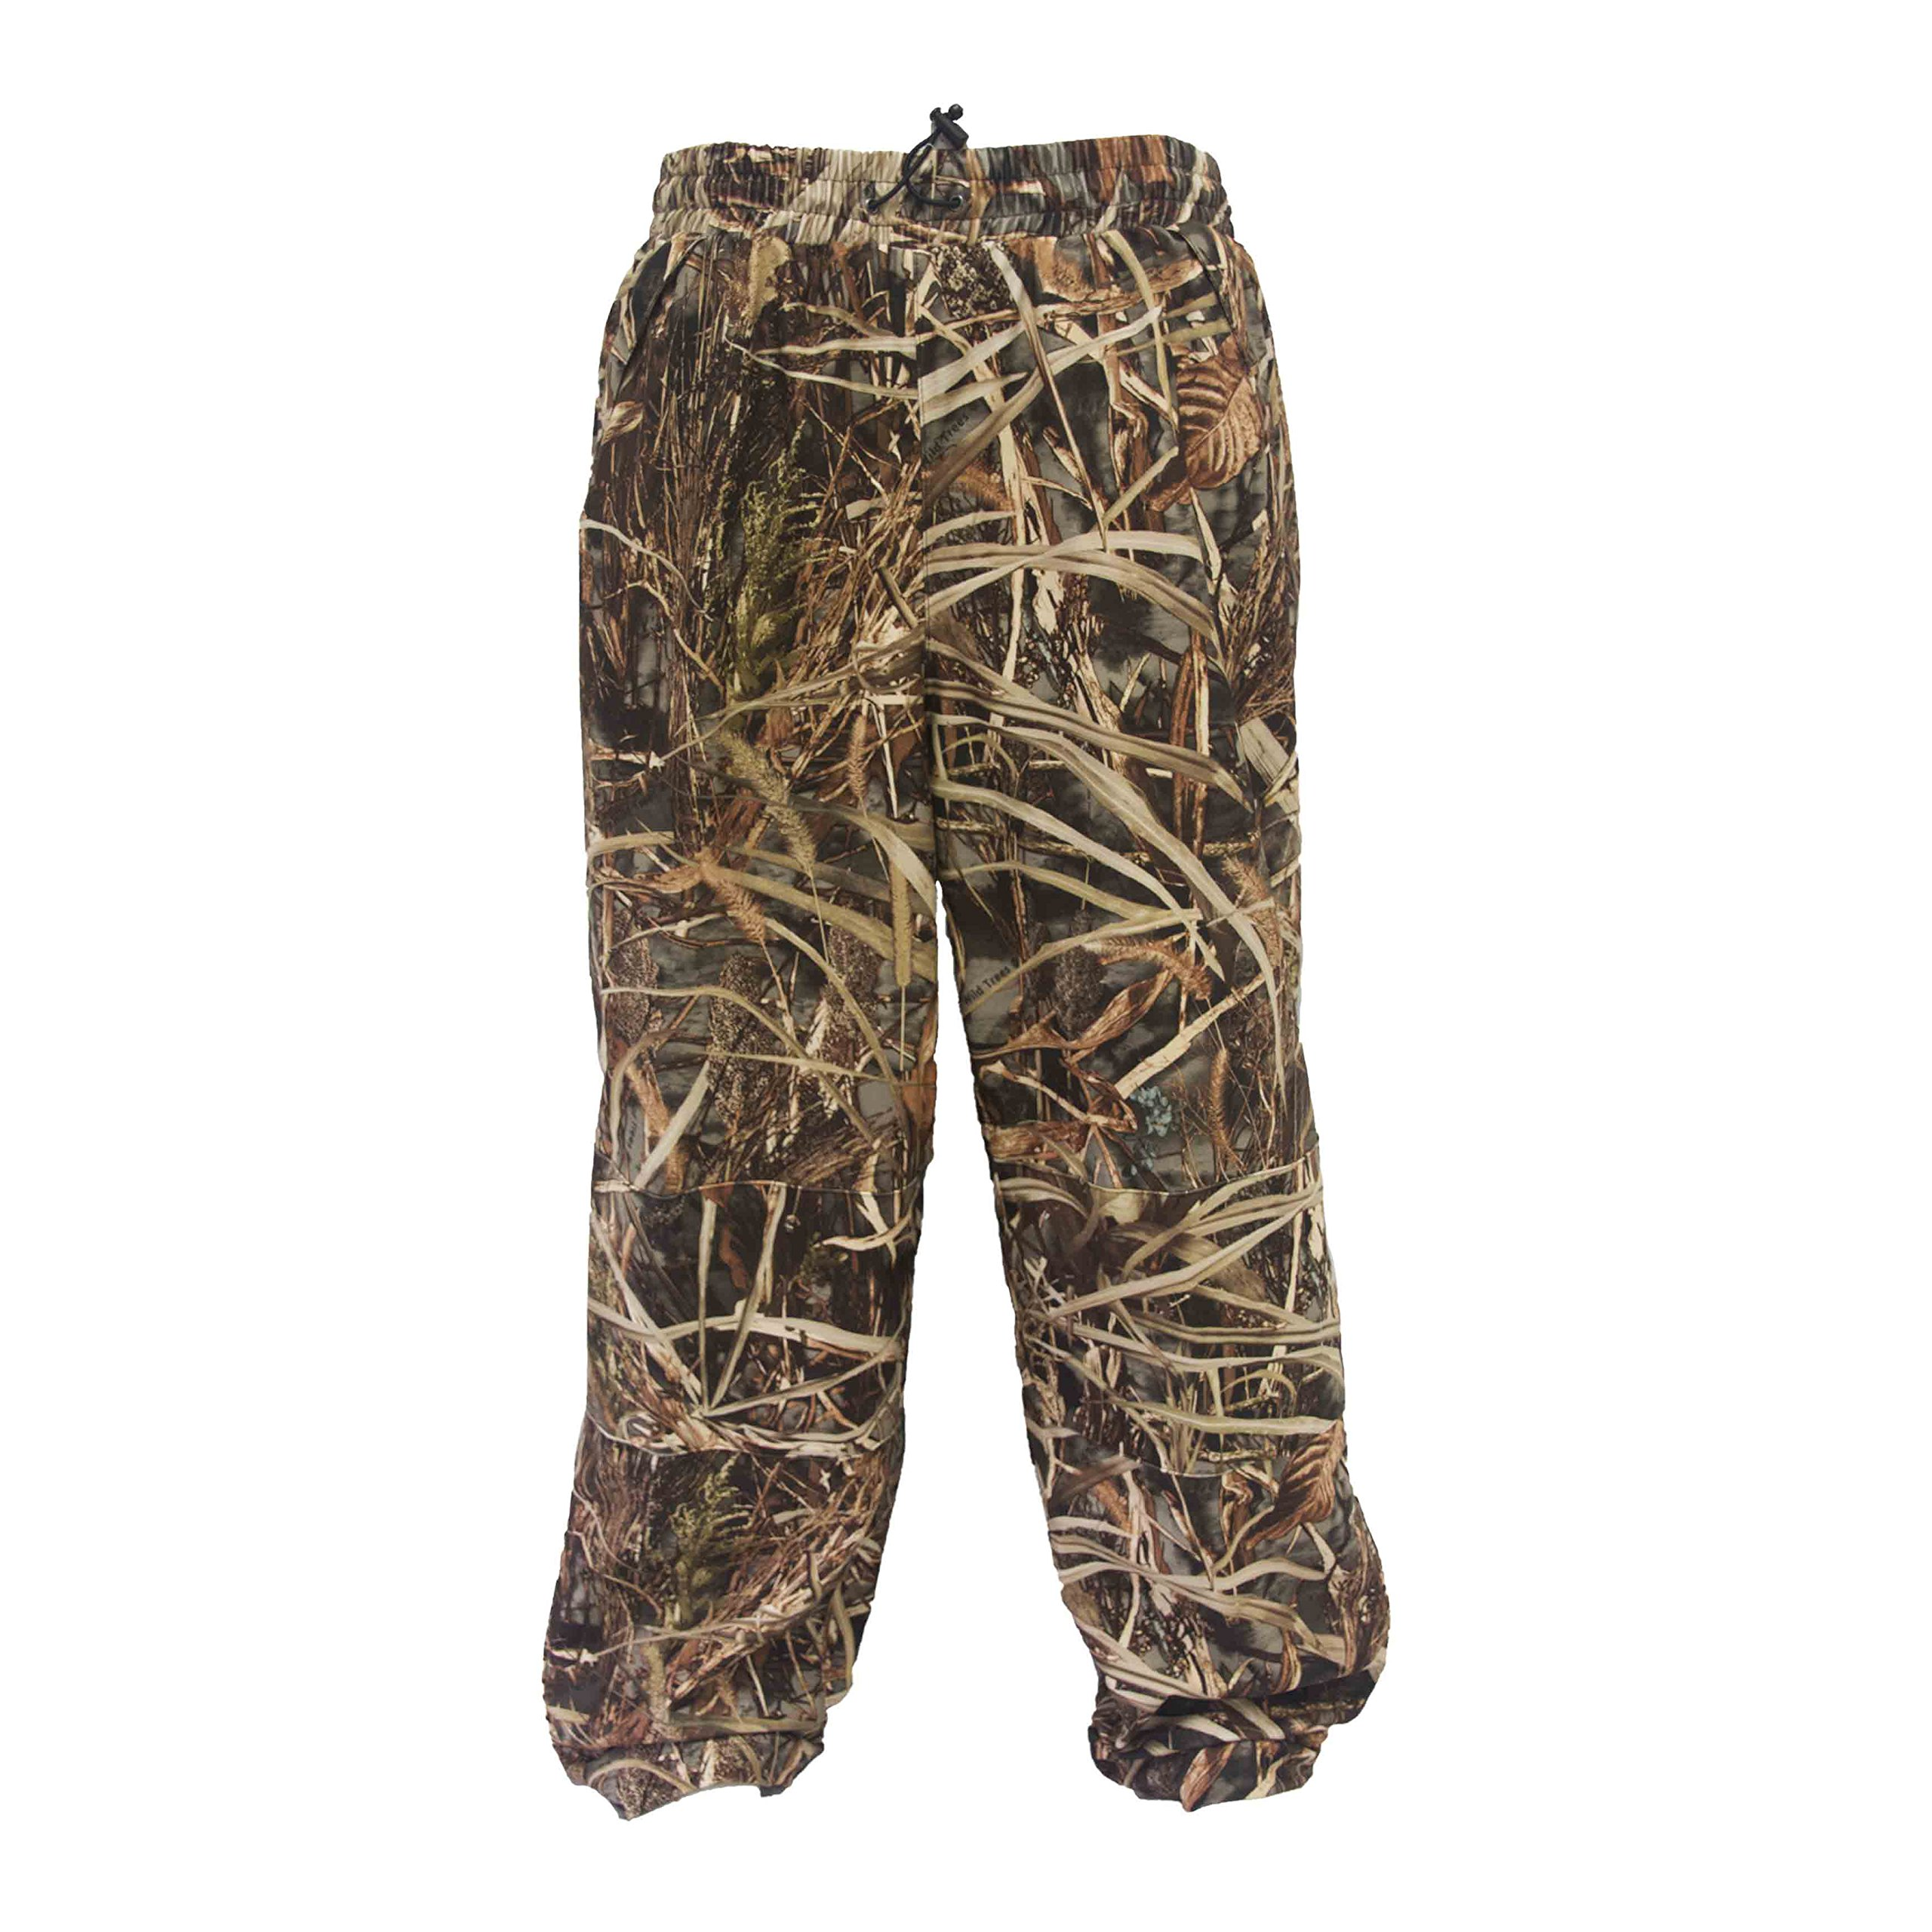 Wildfowler Outfitter Men's Waterproof Pants, Wild Grass, X-Large by Wildfowler